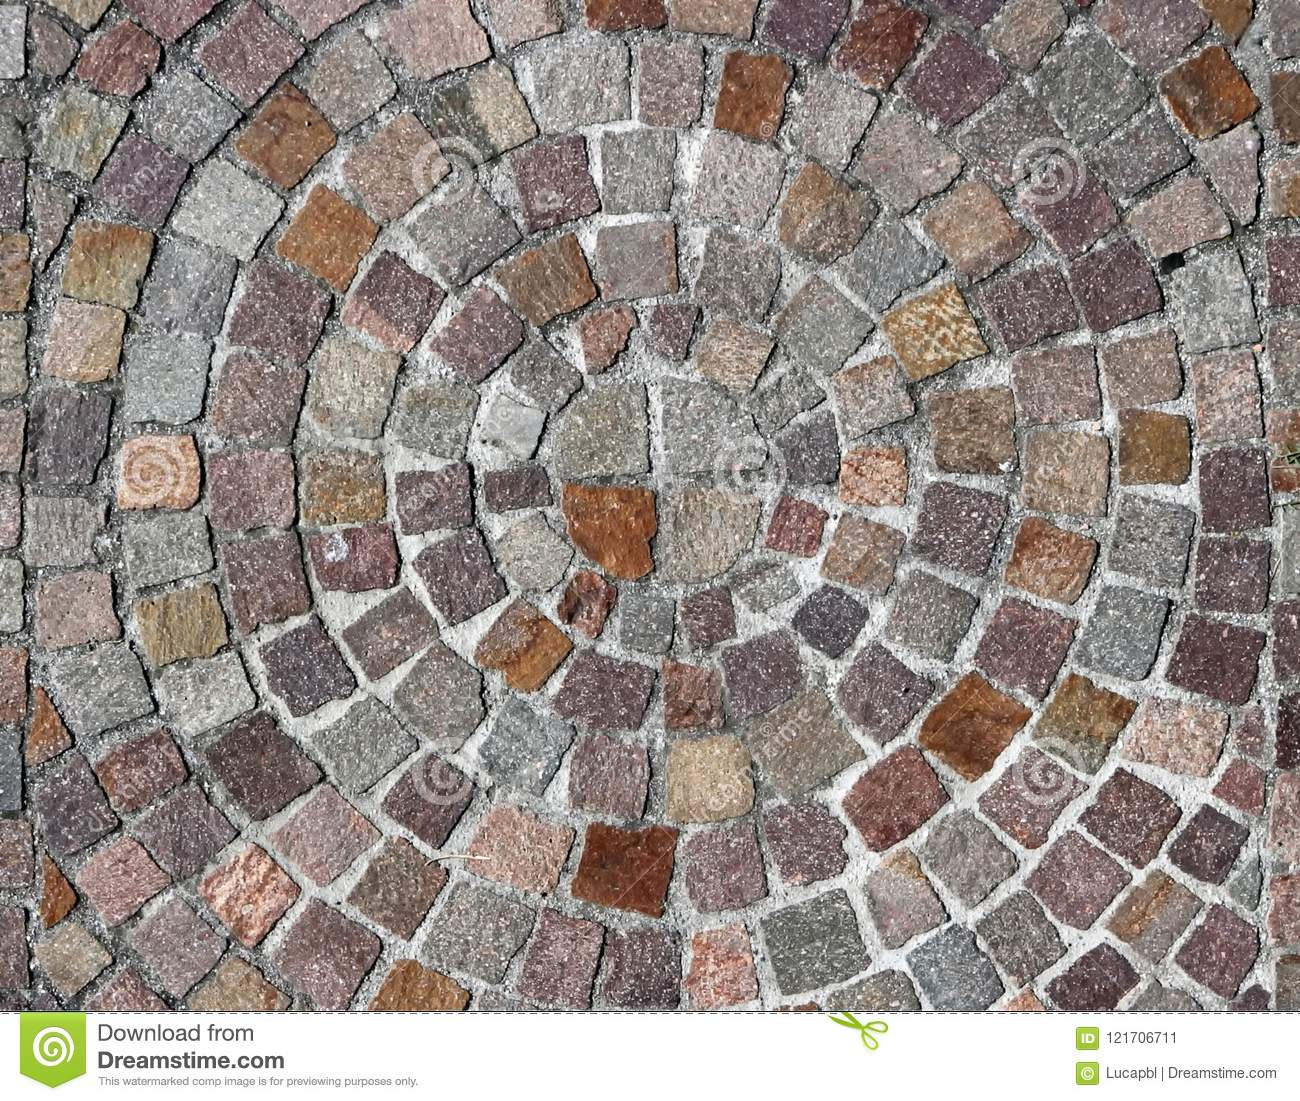 Outdoor stone flooring of porphyry cubes made with a round design, with circles that becomes larger starting from the center